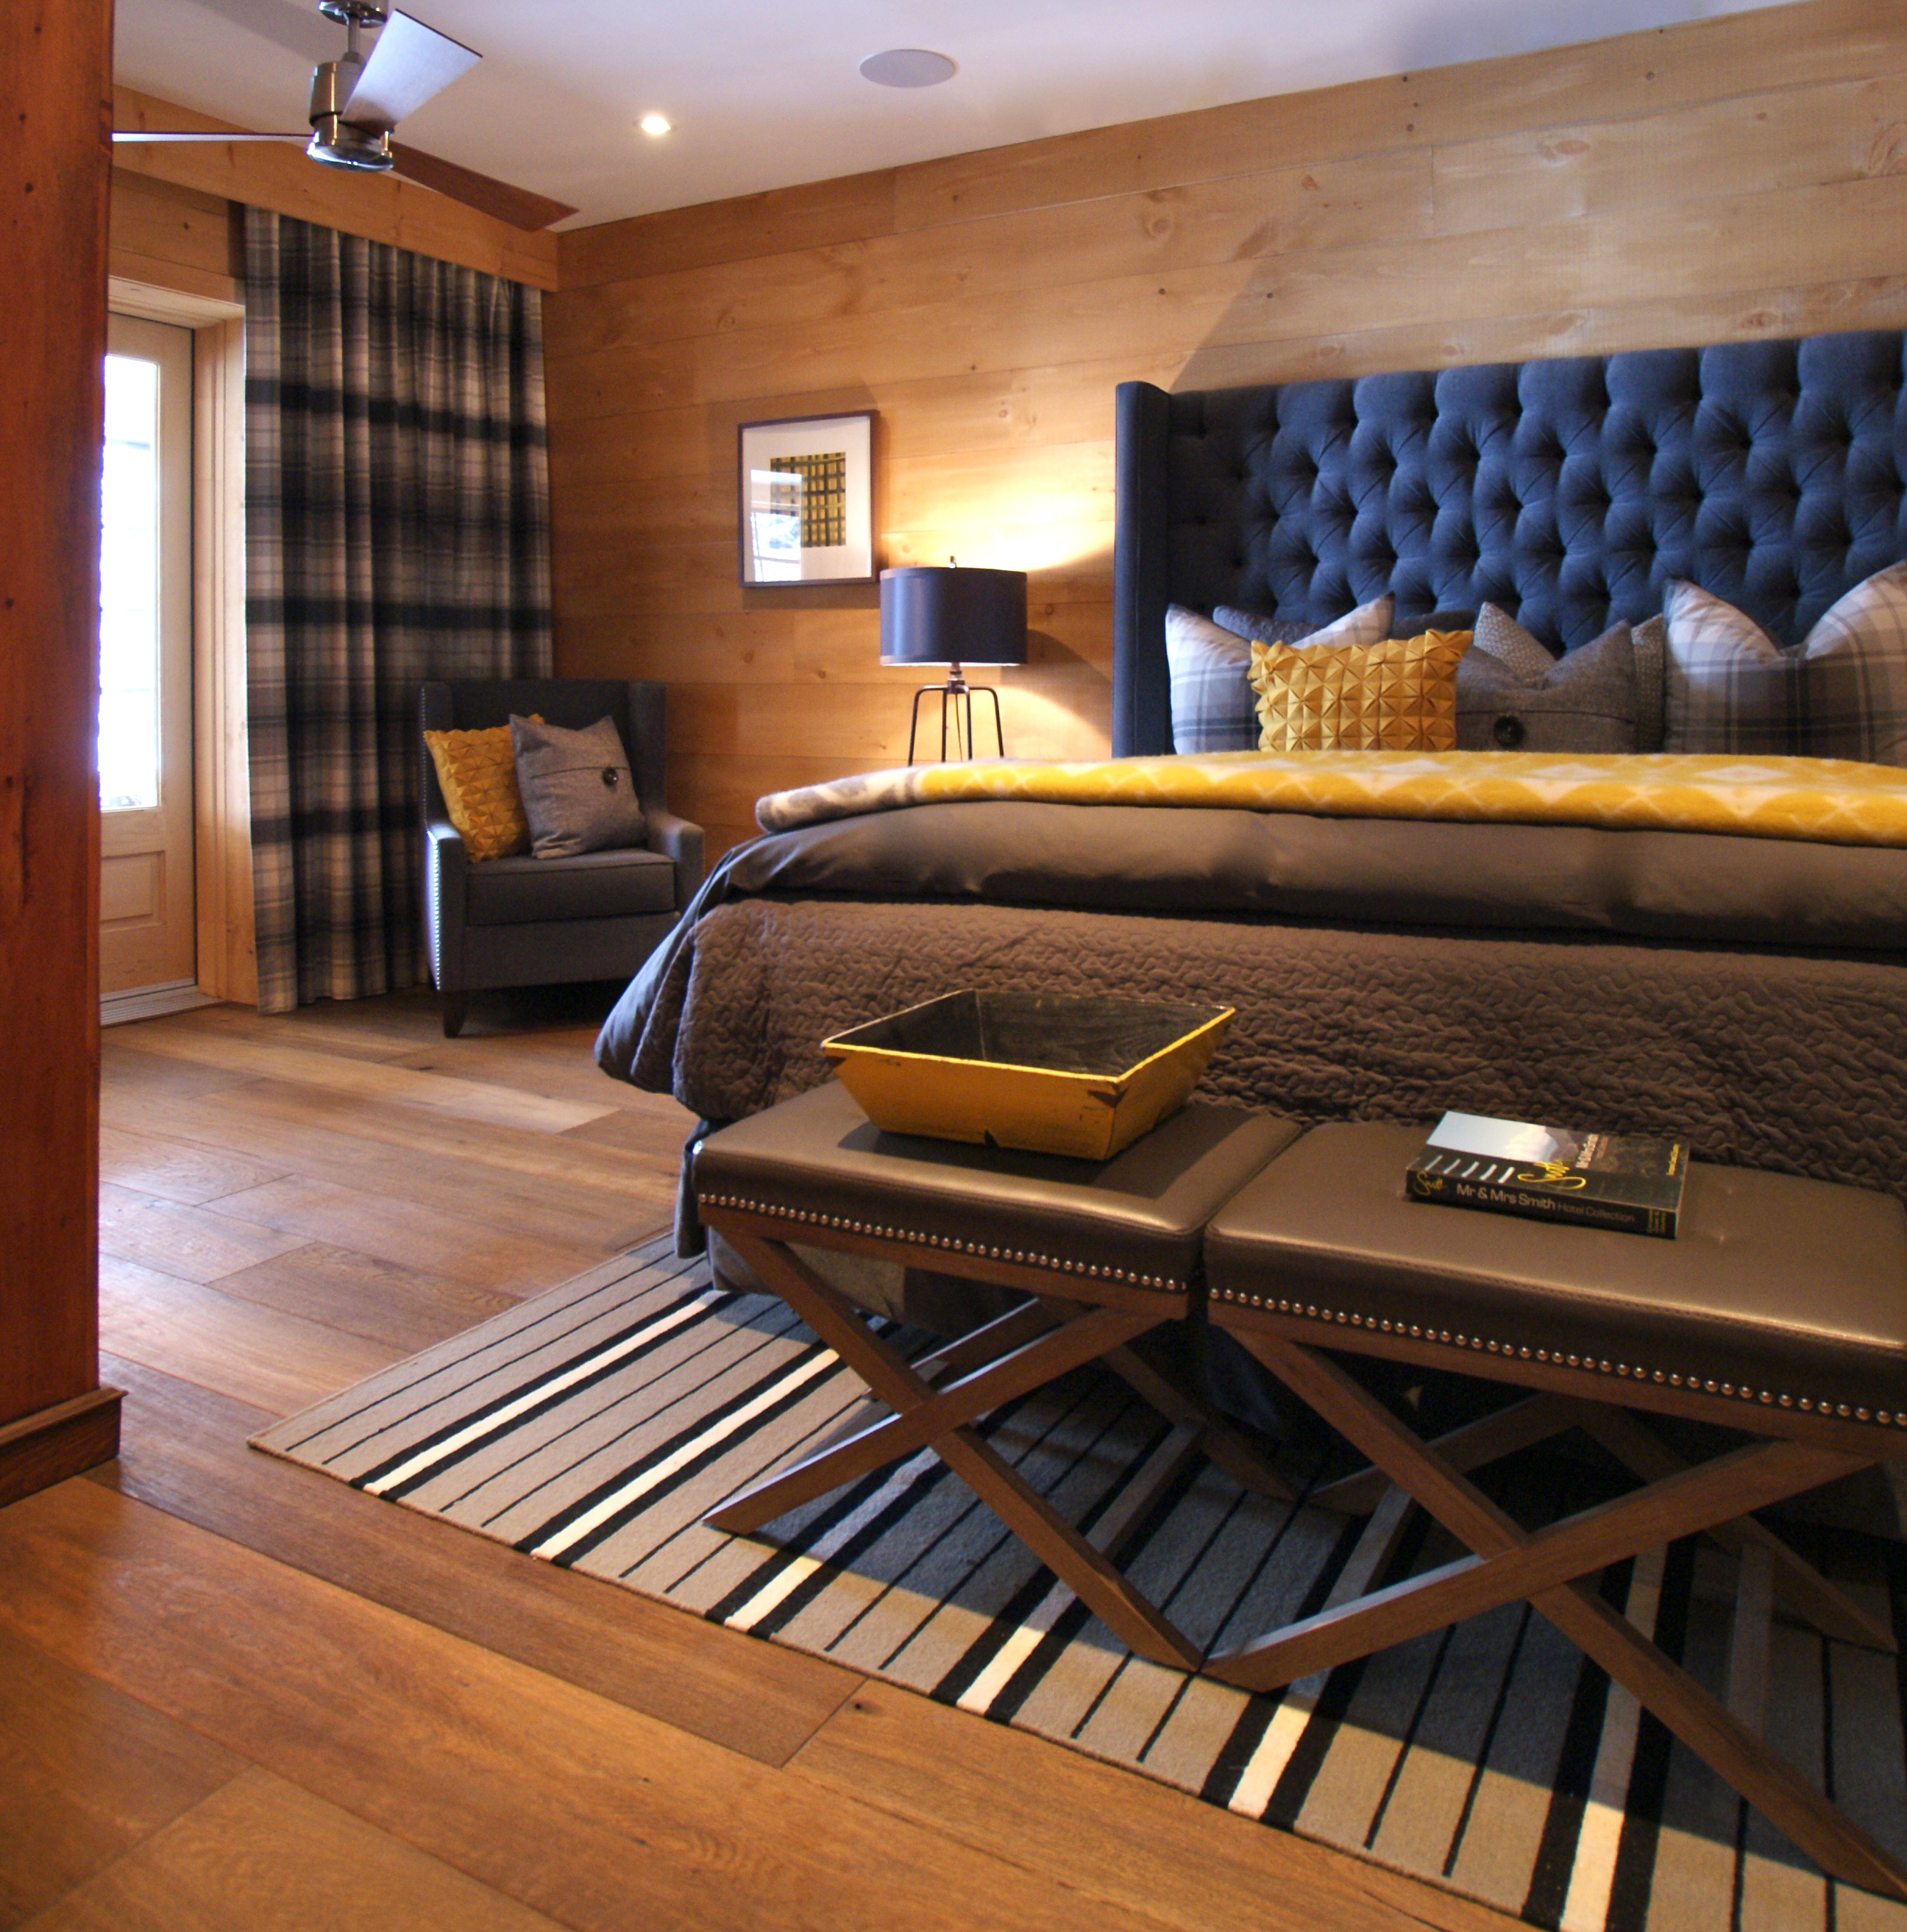 10 Blogs Every Interior Design Fan Should Follow: The Basement Bedroom Reinvented